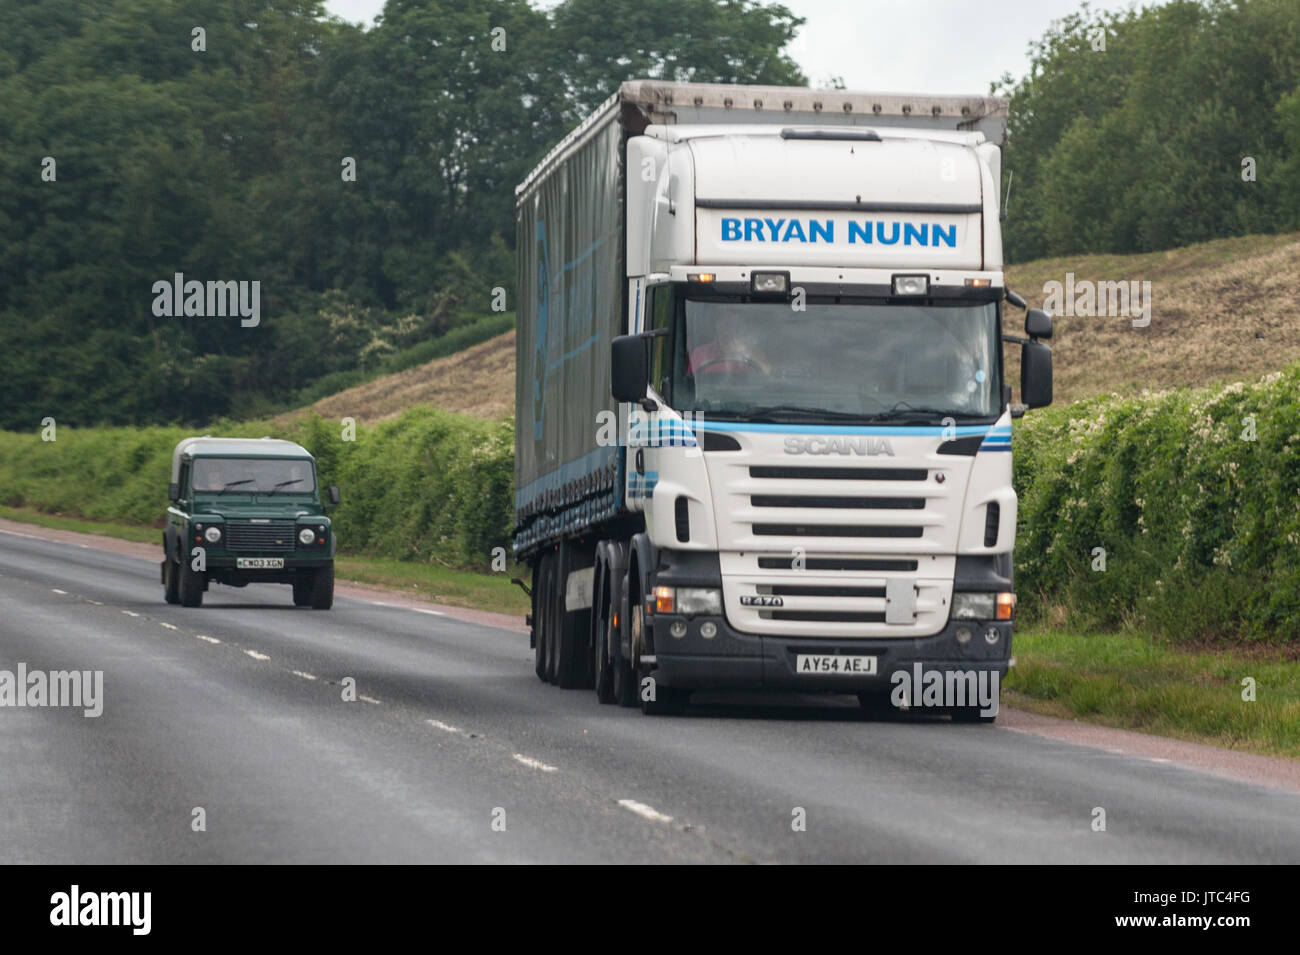 A Scania HGV lorry driving on a main road in the Uk - Stock Image